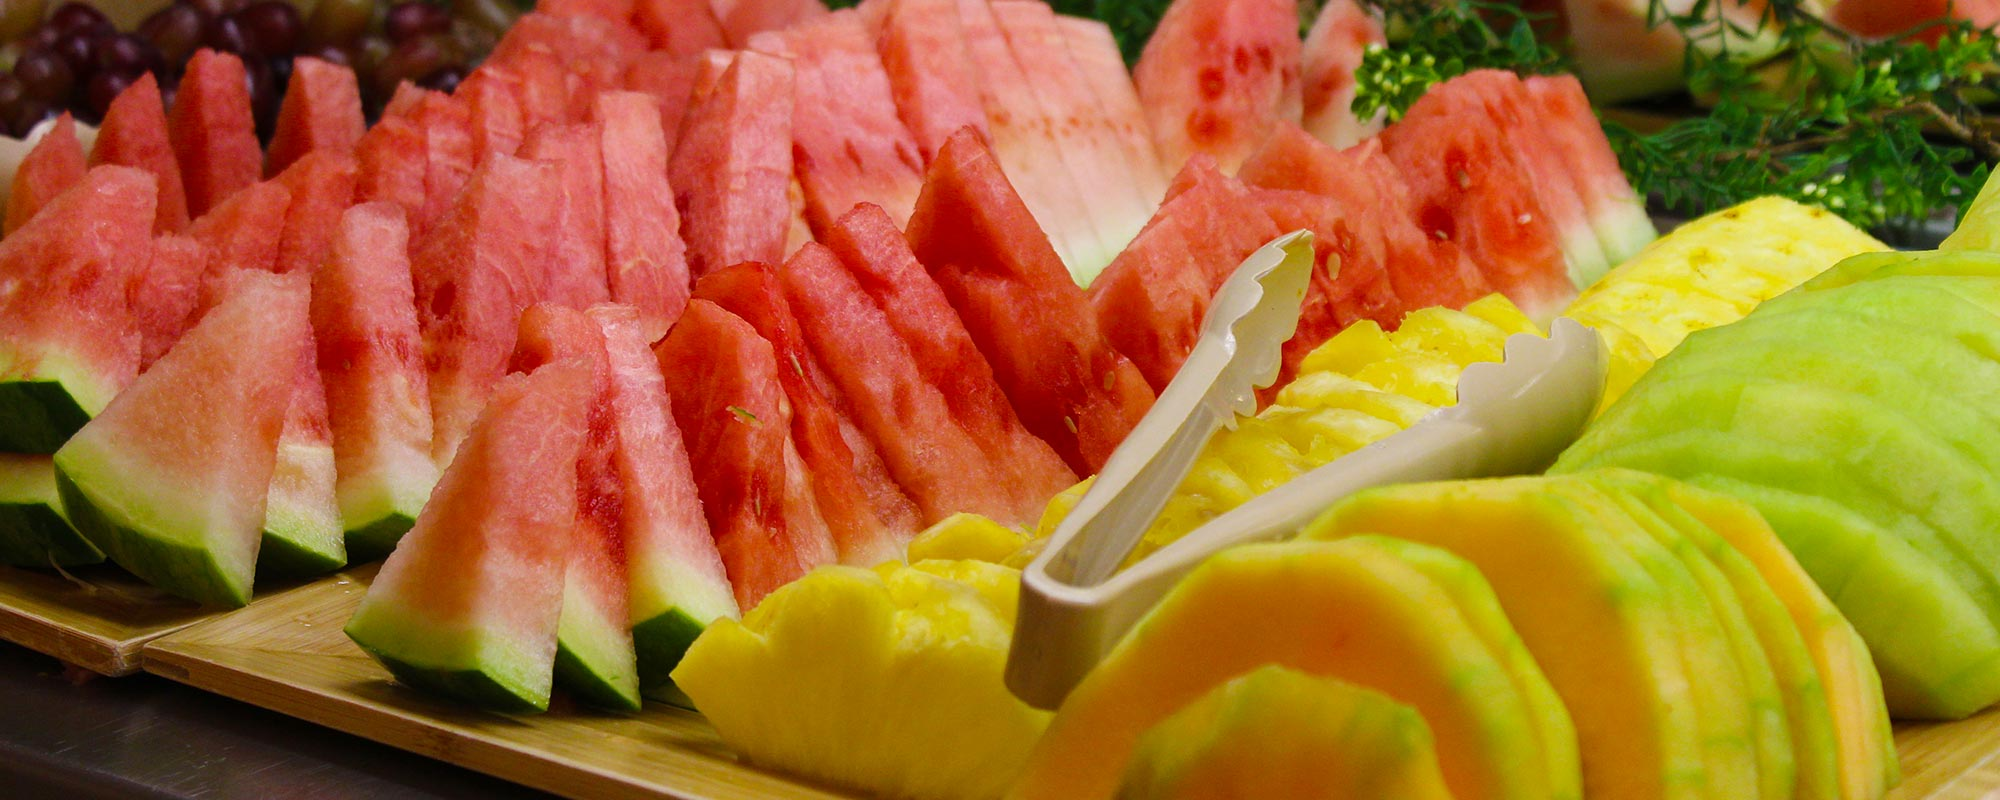 Watermelon, Pineapple and Melon Slices